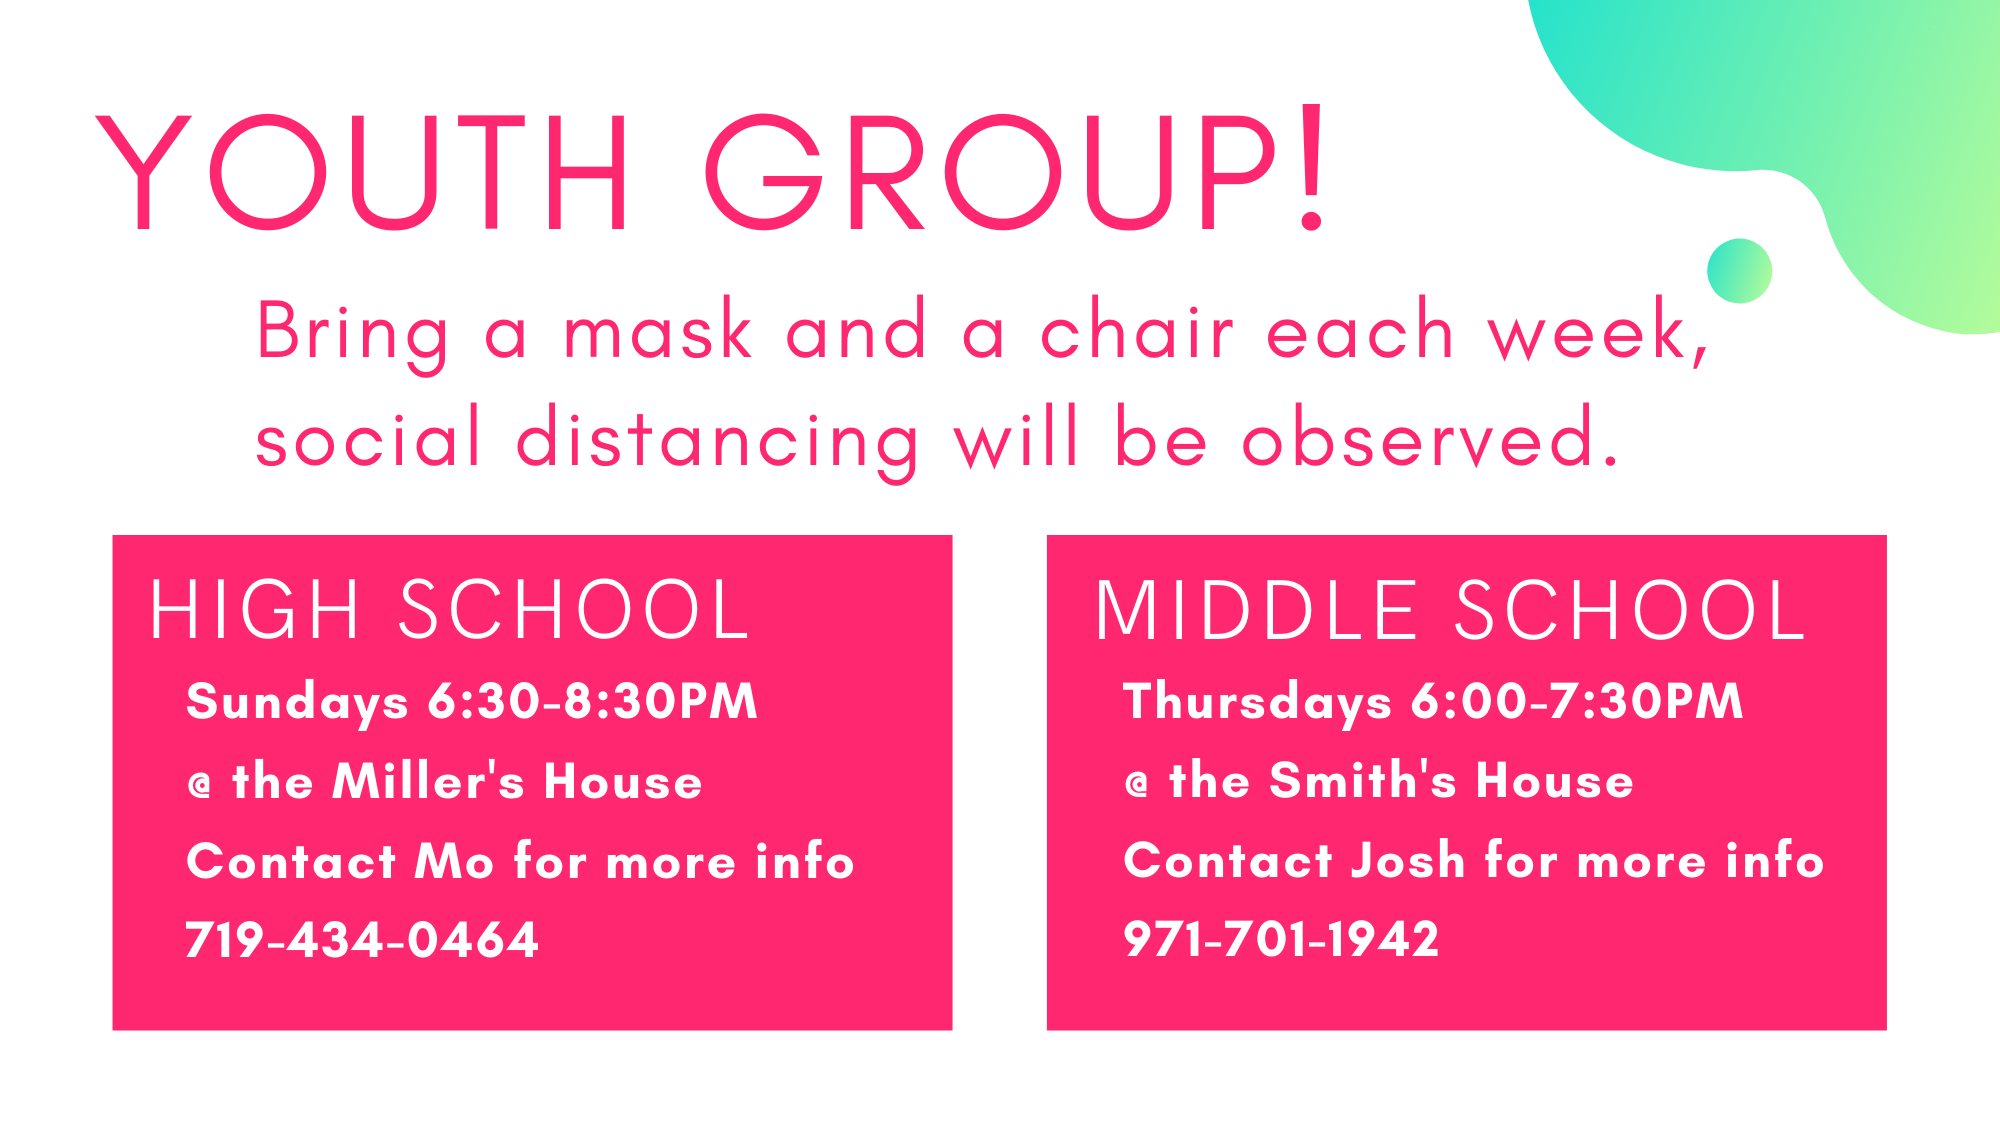 Youth Group Update